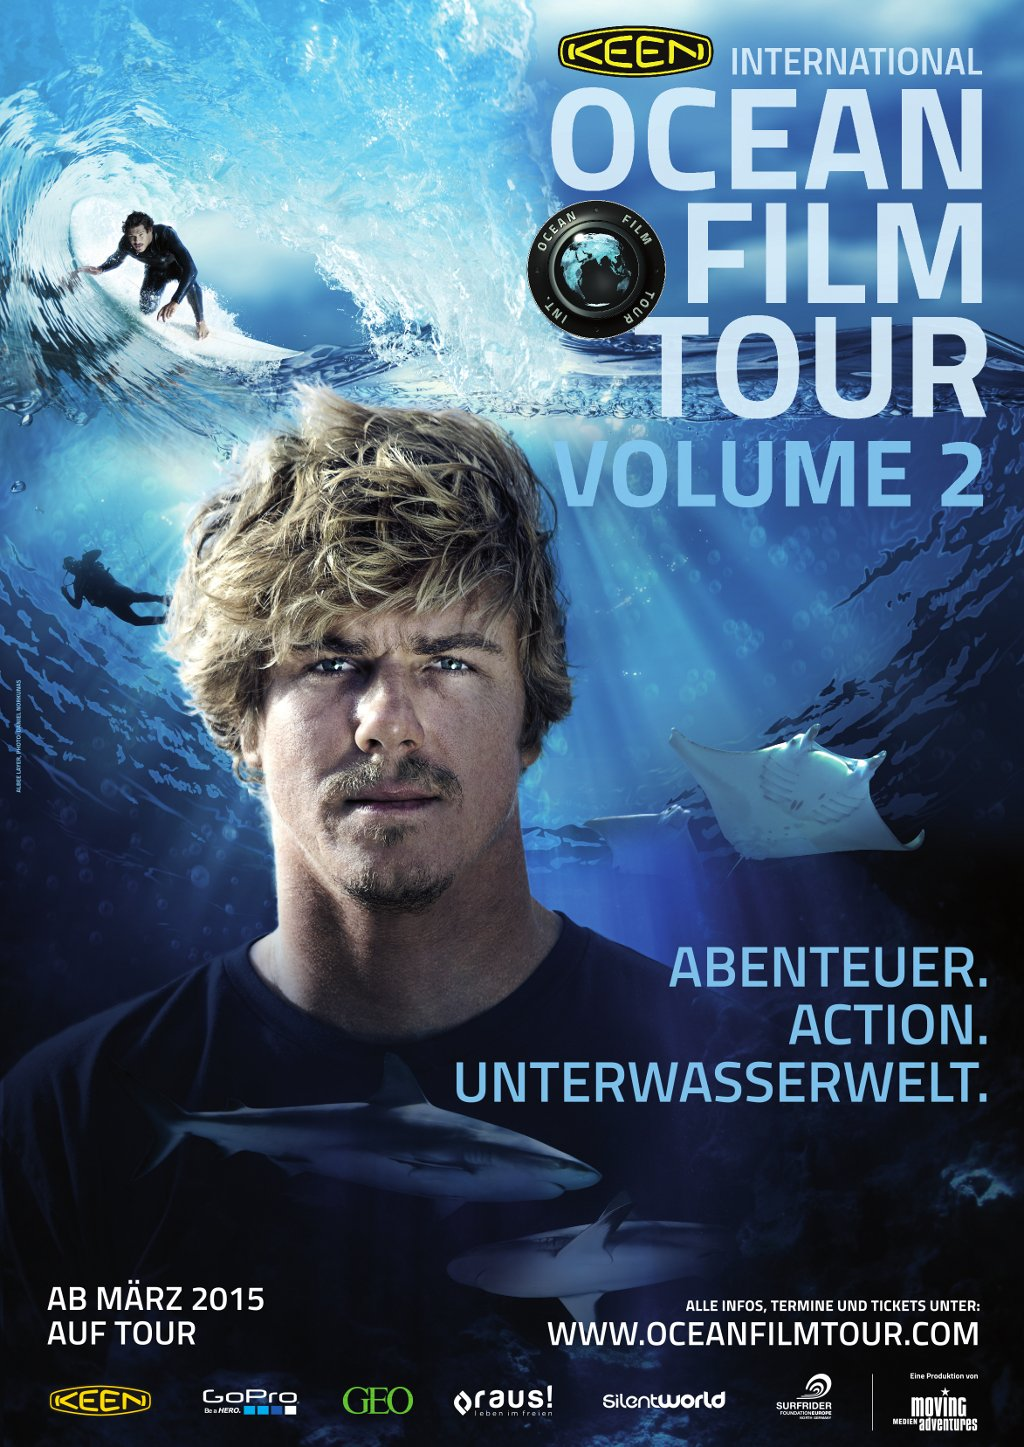 Ocean Film Tour - Volume 2